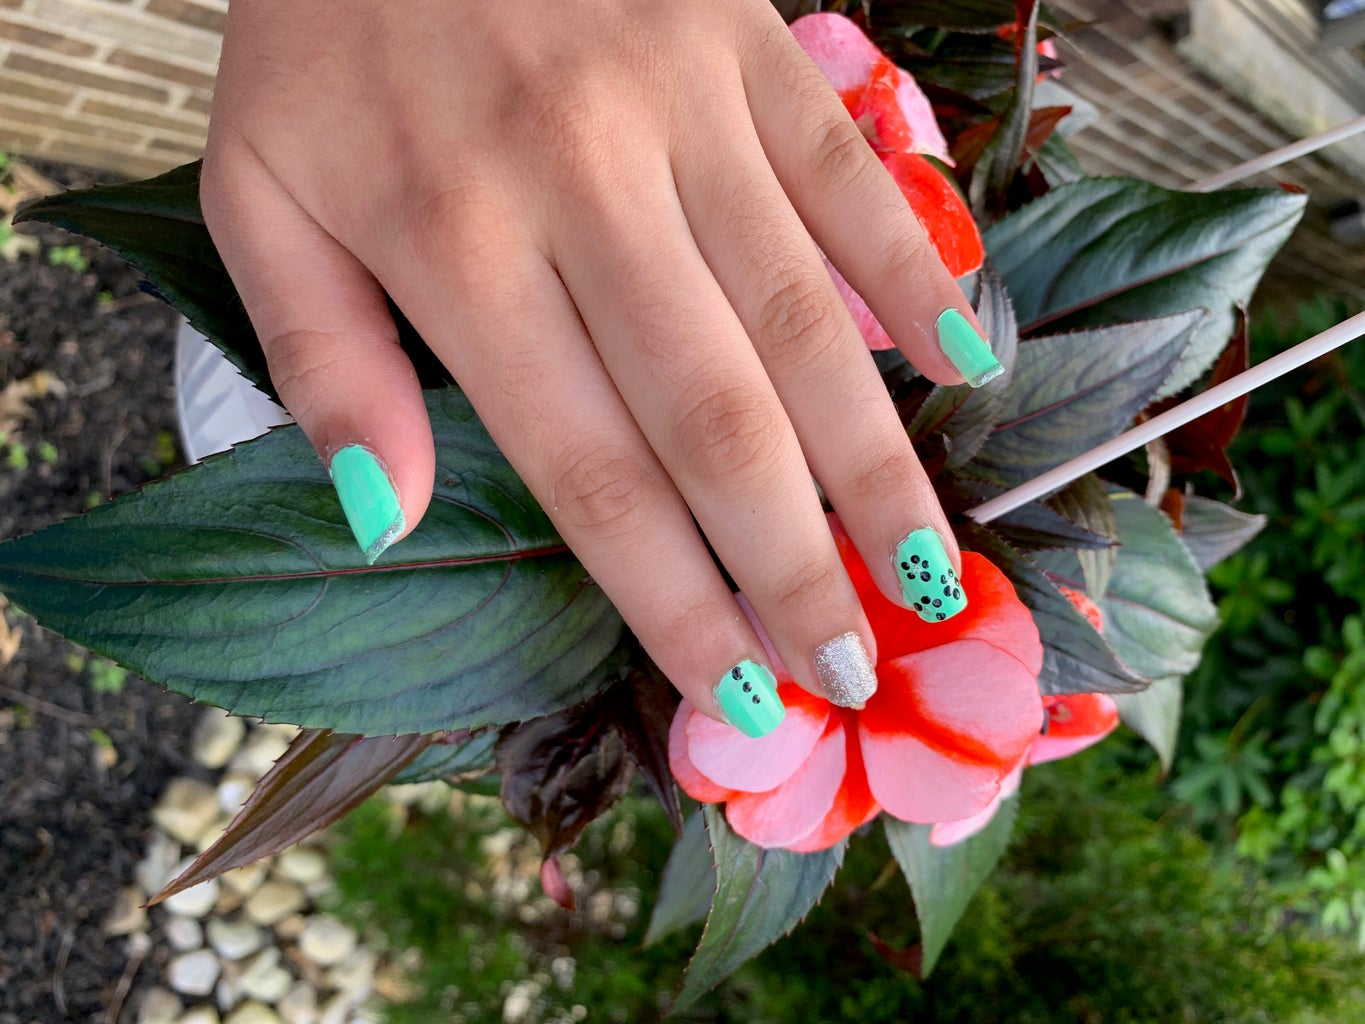 Congratulations Your Nail Art Design Is Complete